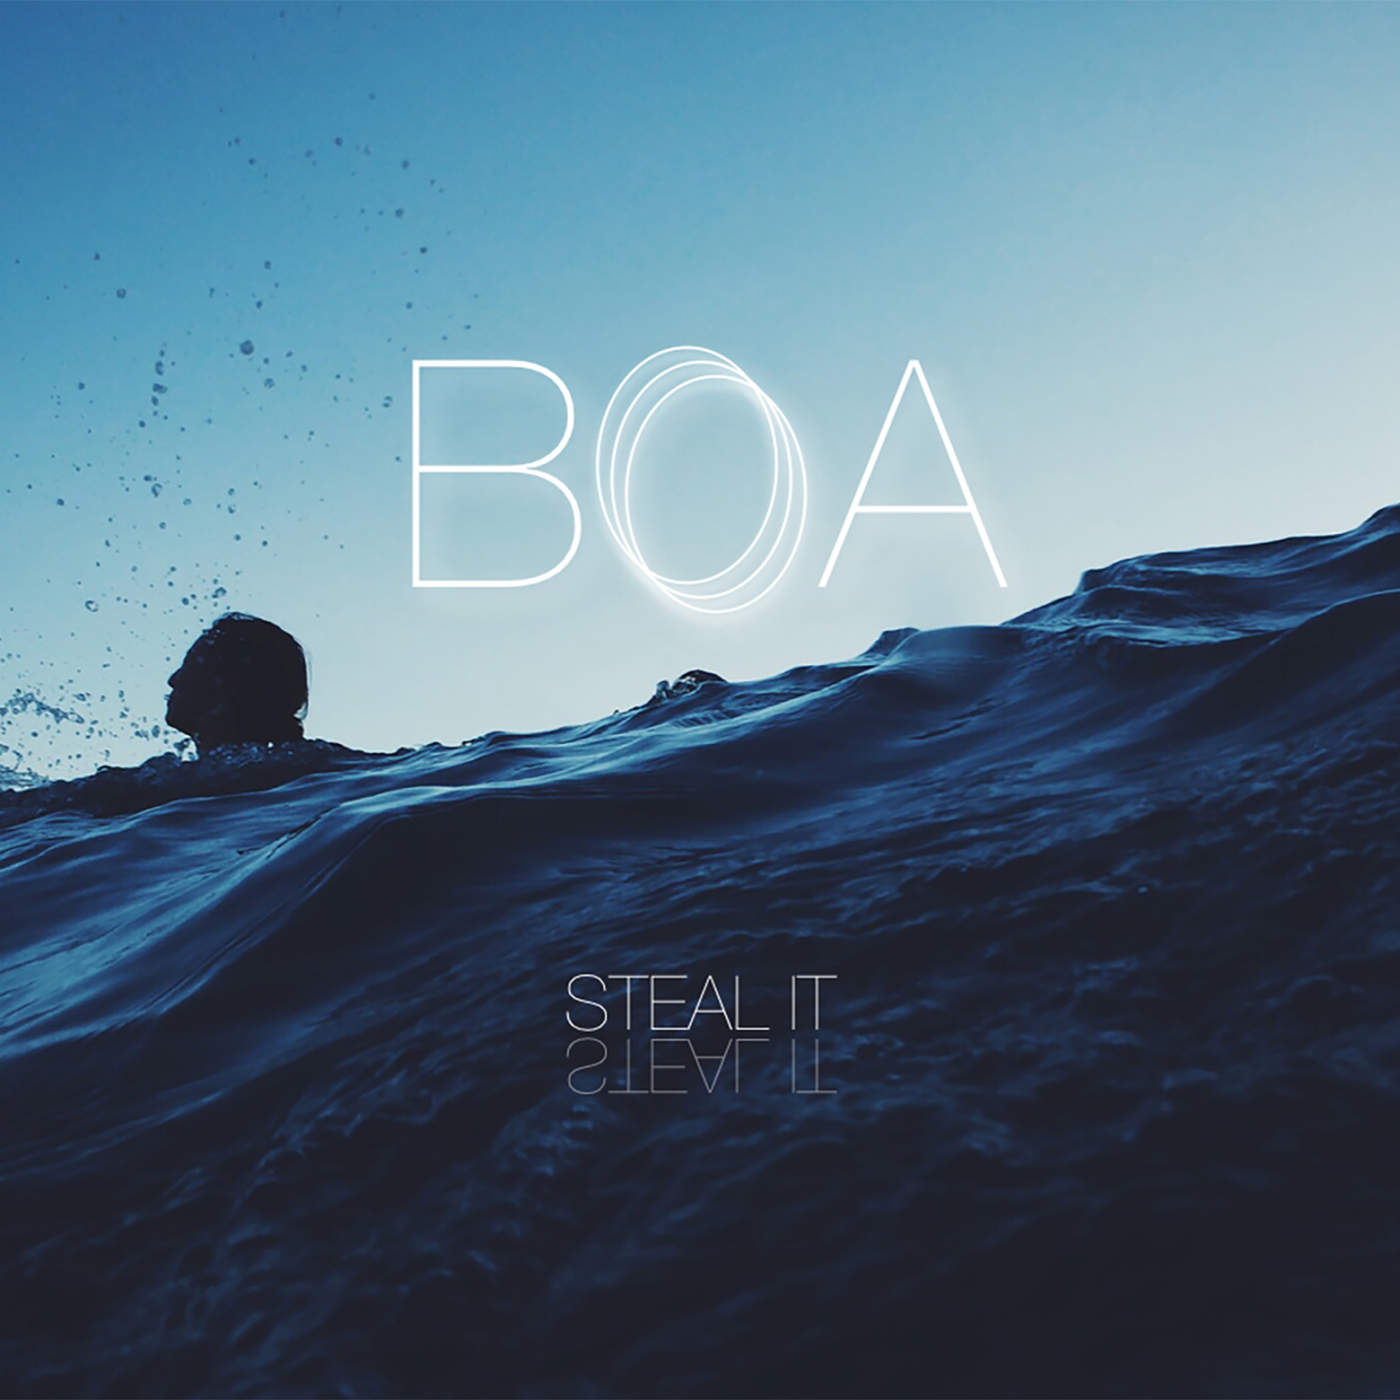 Art for Steal It by BOA